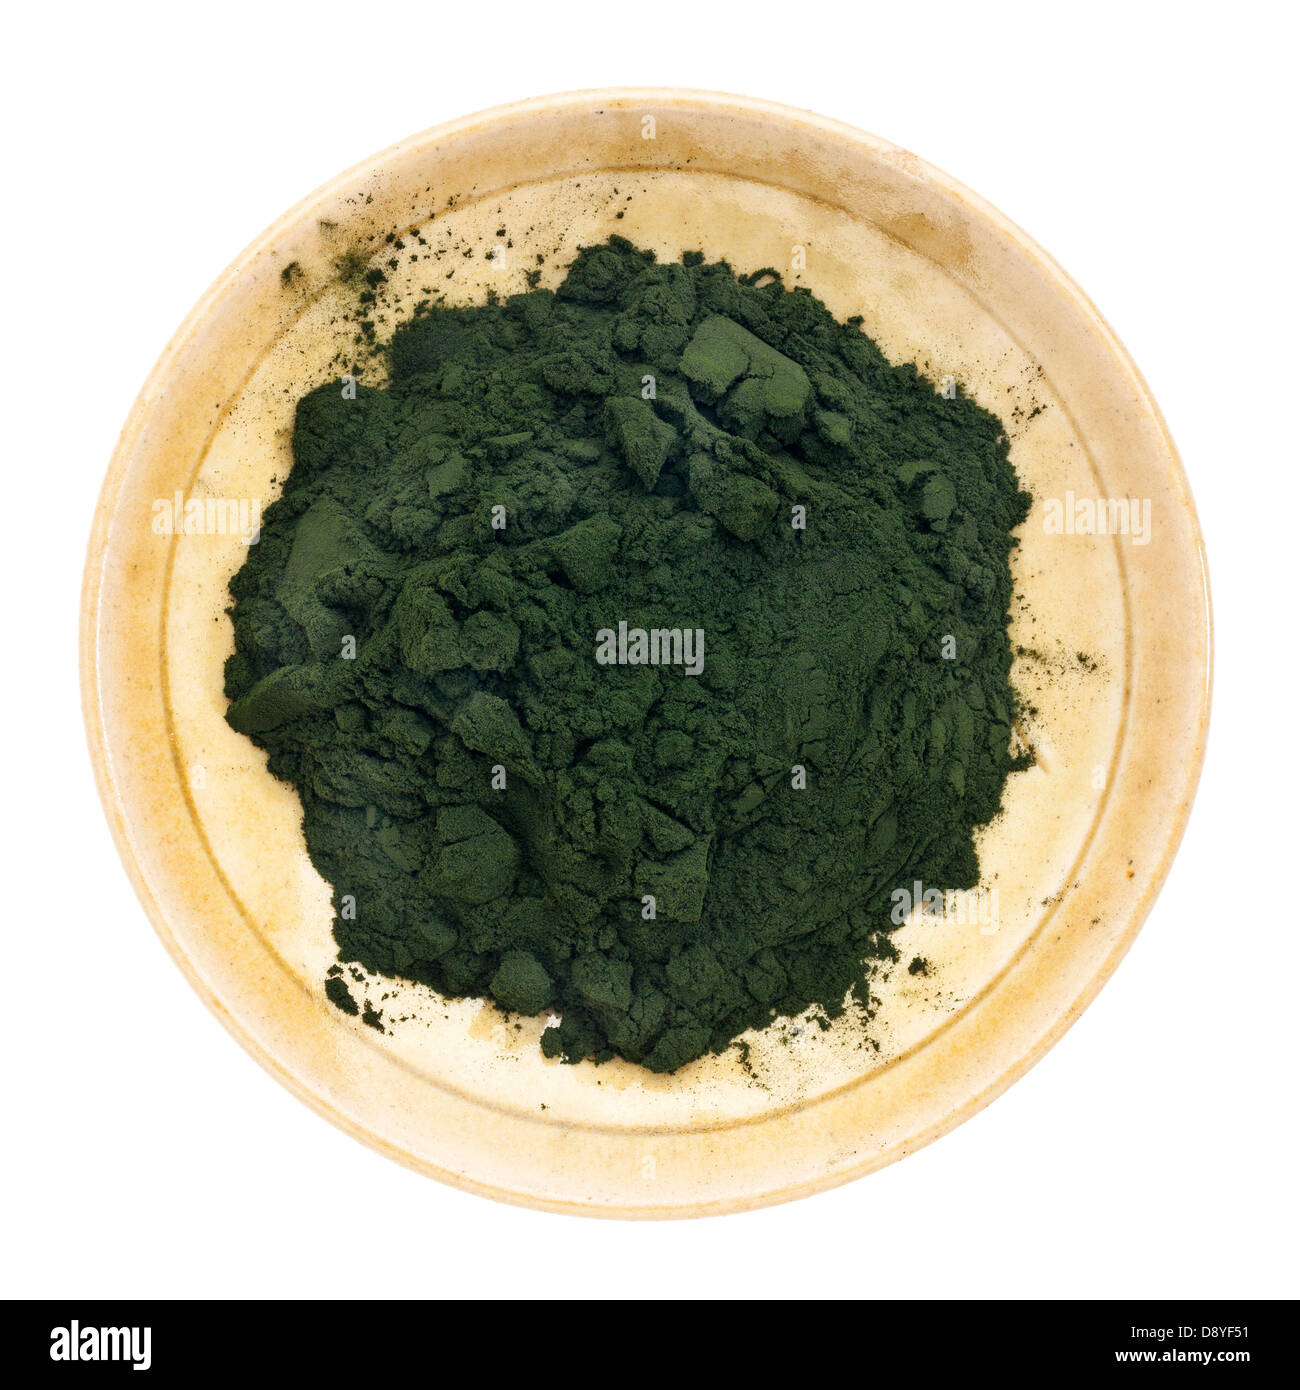 Nutrient-rich organic chlorella powder on a small ceramic bowl, isolated on white, top view - Stock Image